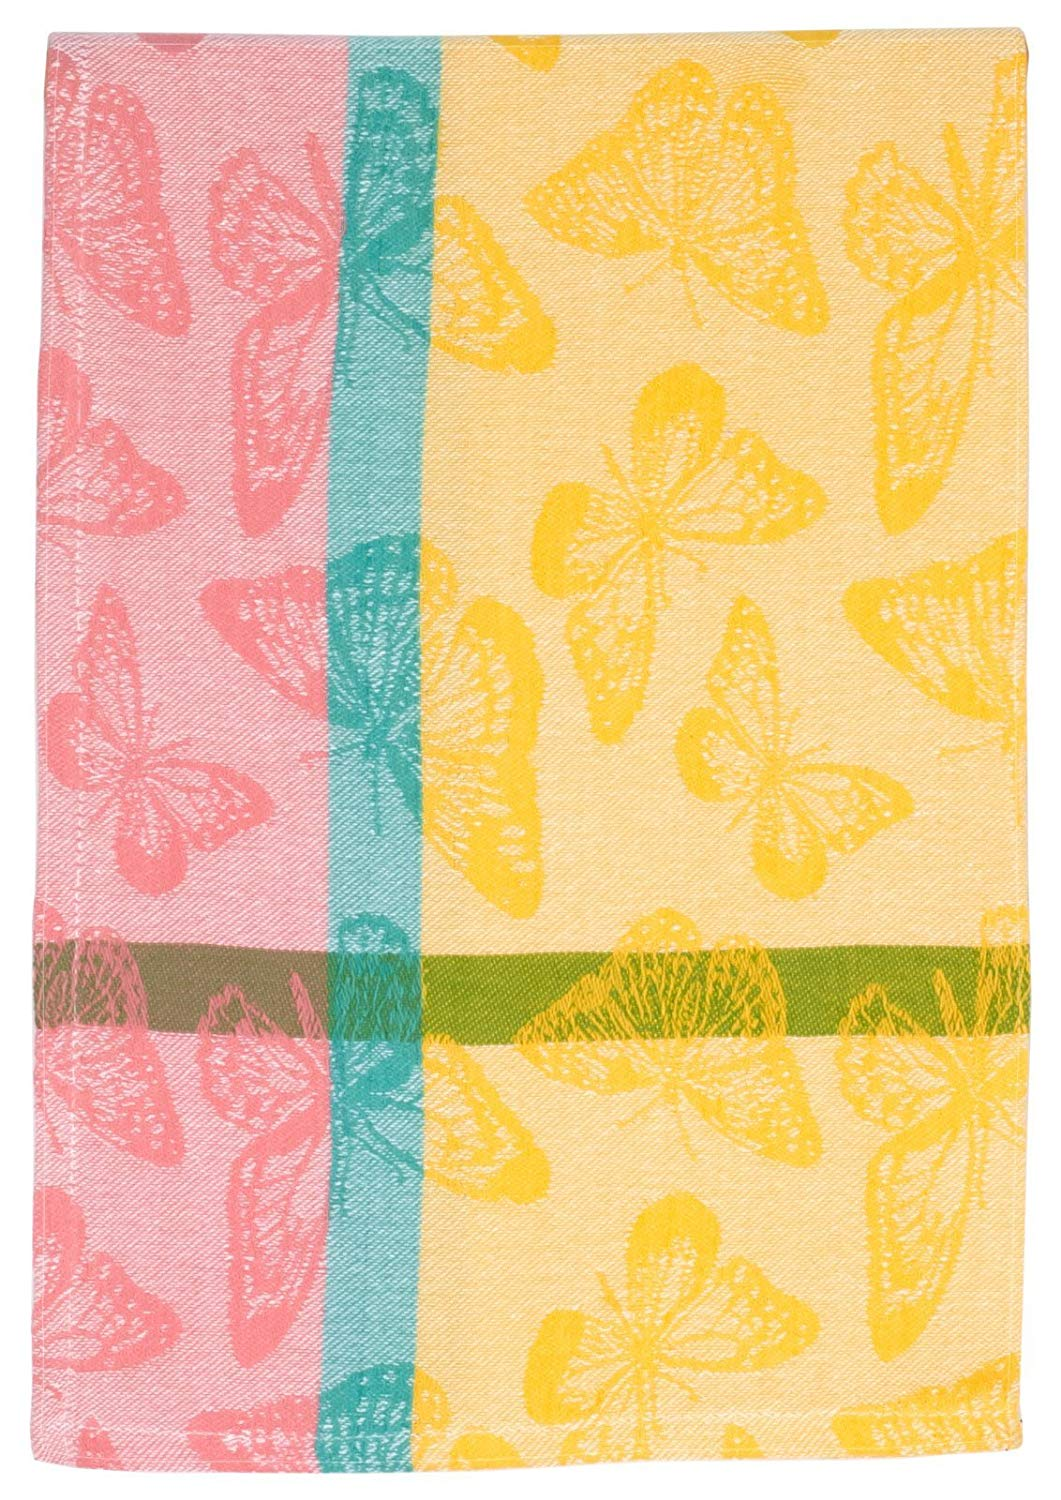 """Traders and Company 100% Cotton Yellow Pink & Blue 20""""x28"""" Dish Towel, Set of 6 - Butterflies Lemon"""